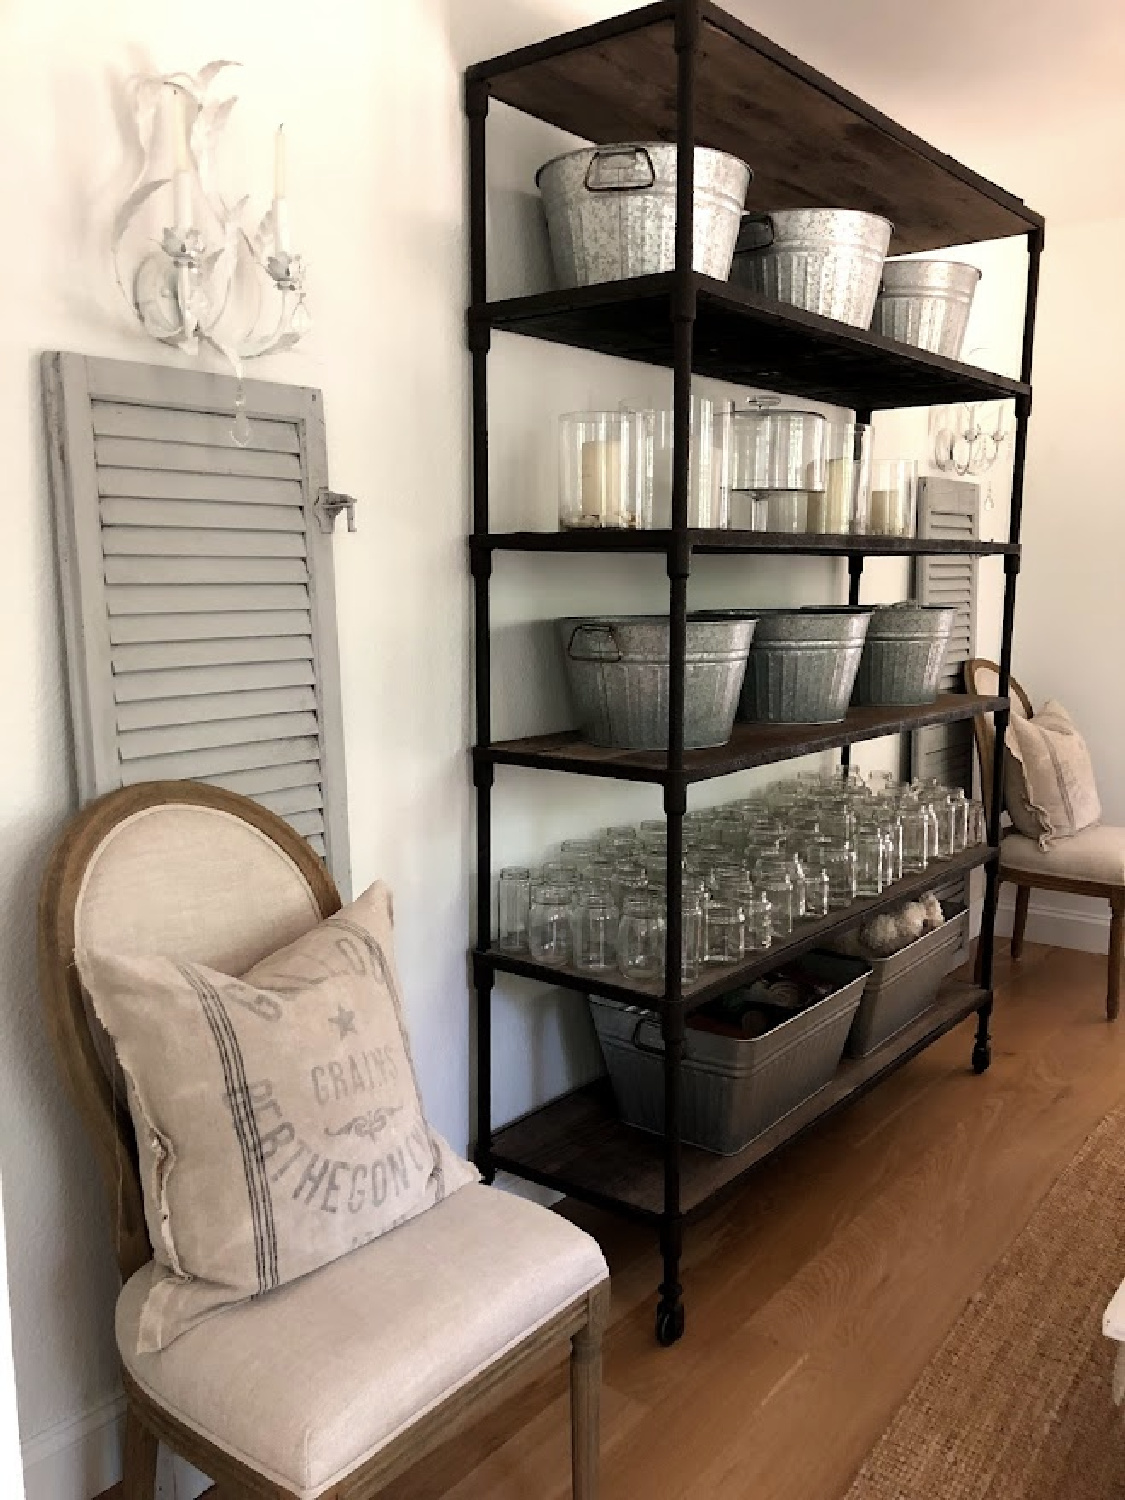 Rustic shelves with galvanized tubs to organize in the dining room - Hello Lovely Studio.